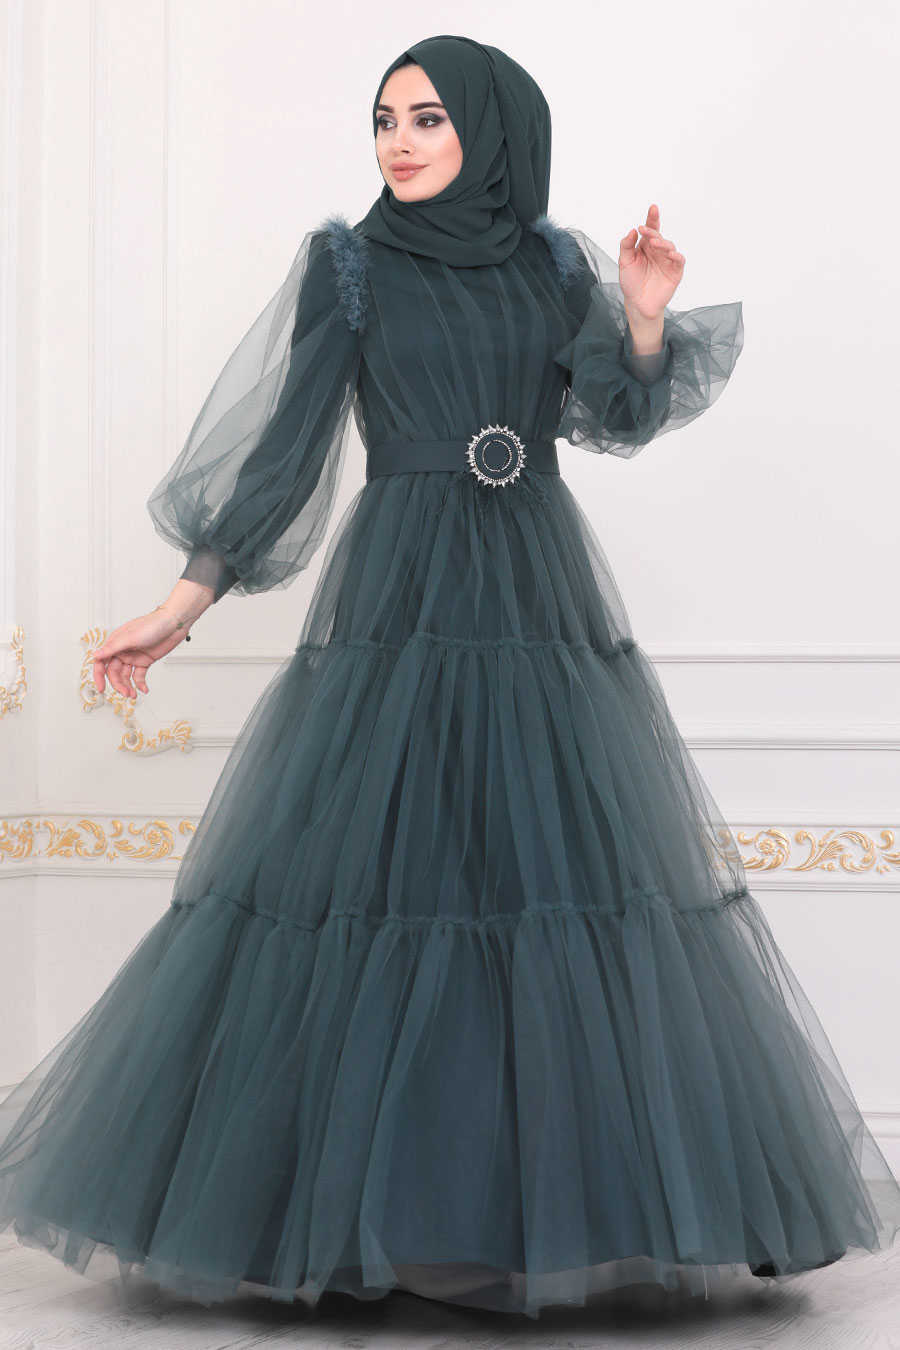 Petrol Green Hijab Evening Dress 40350PY